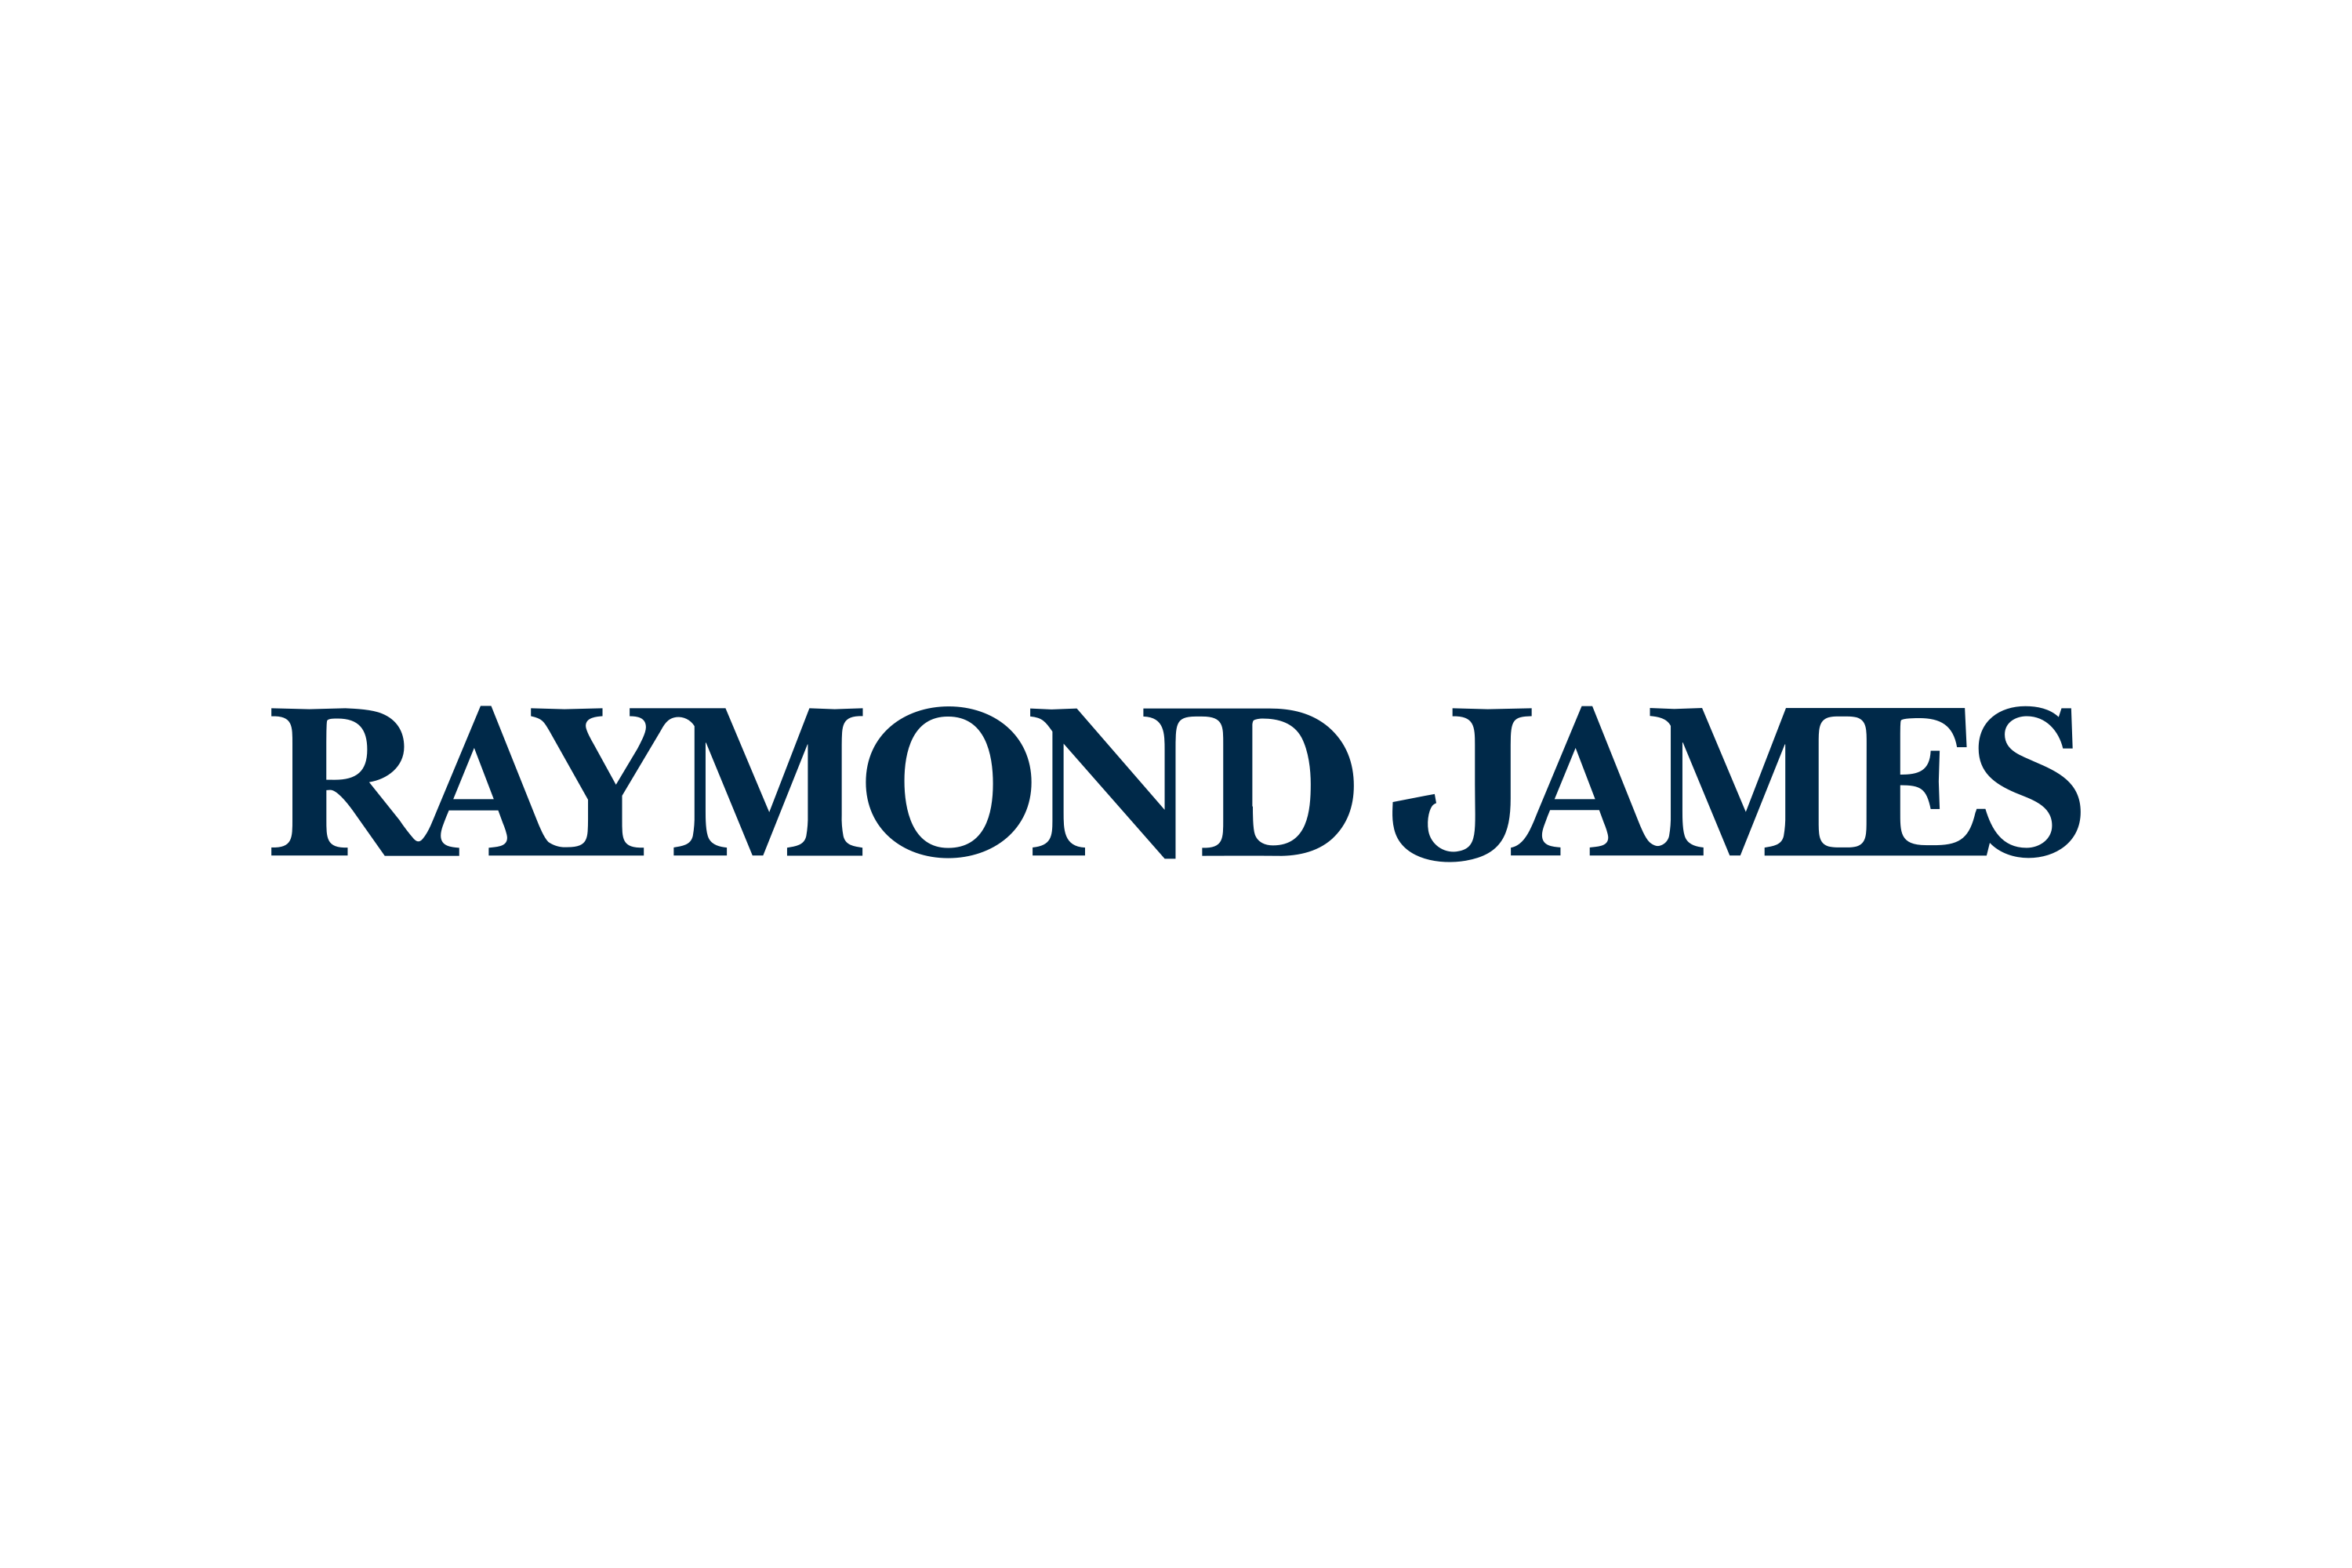 Download Raymond James Financial Logo in SVG Vector or PNG File Format -  Logo.wine